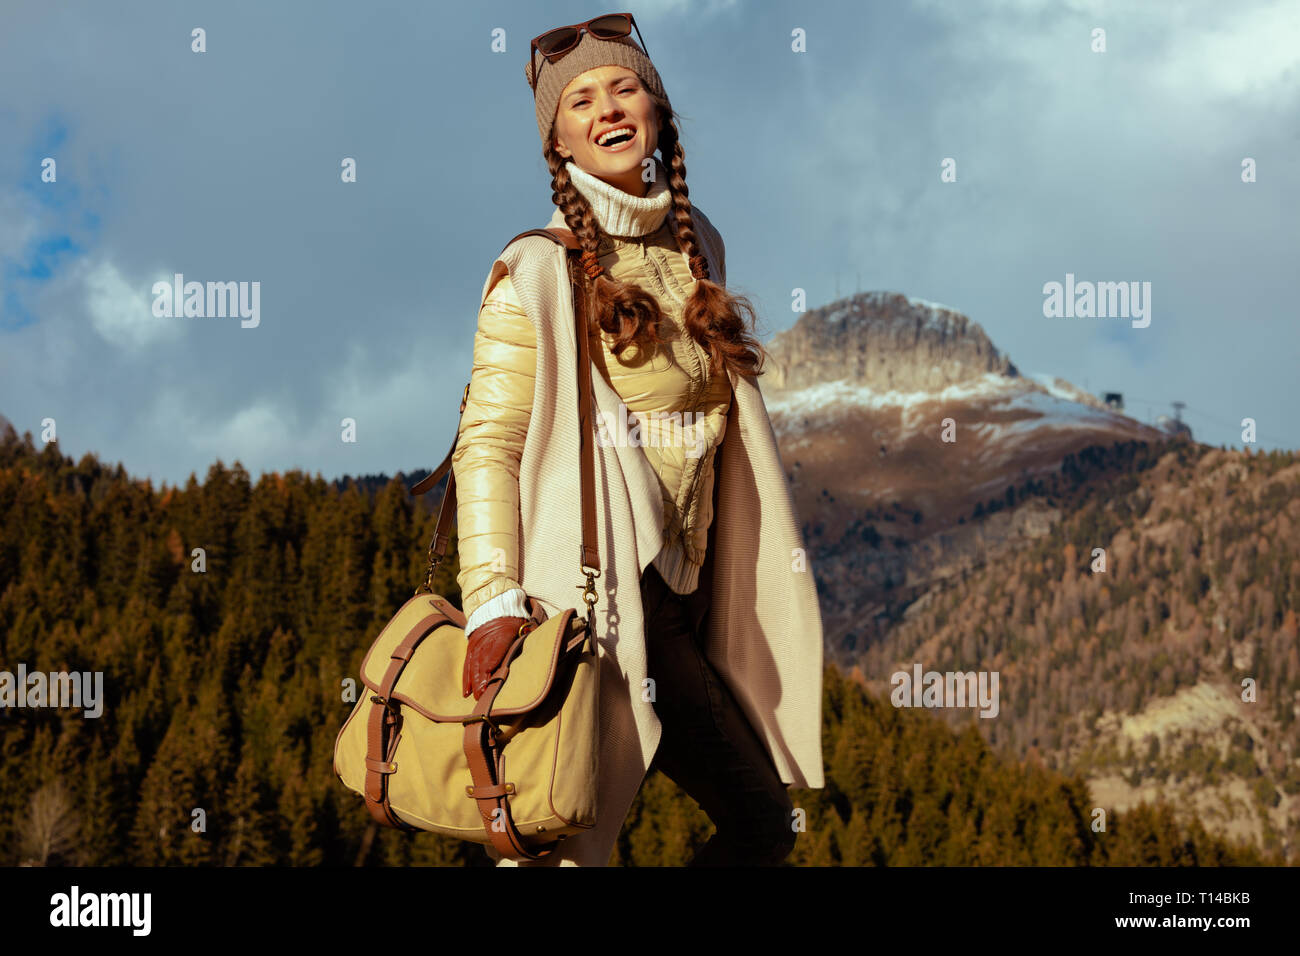 Portrait of happy active traveller woman in hiking clothes with bag against mountain landscape in South Tyrol, Italy. - Stock Image